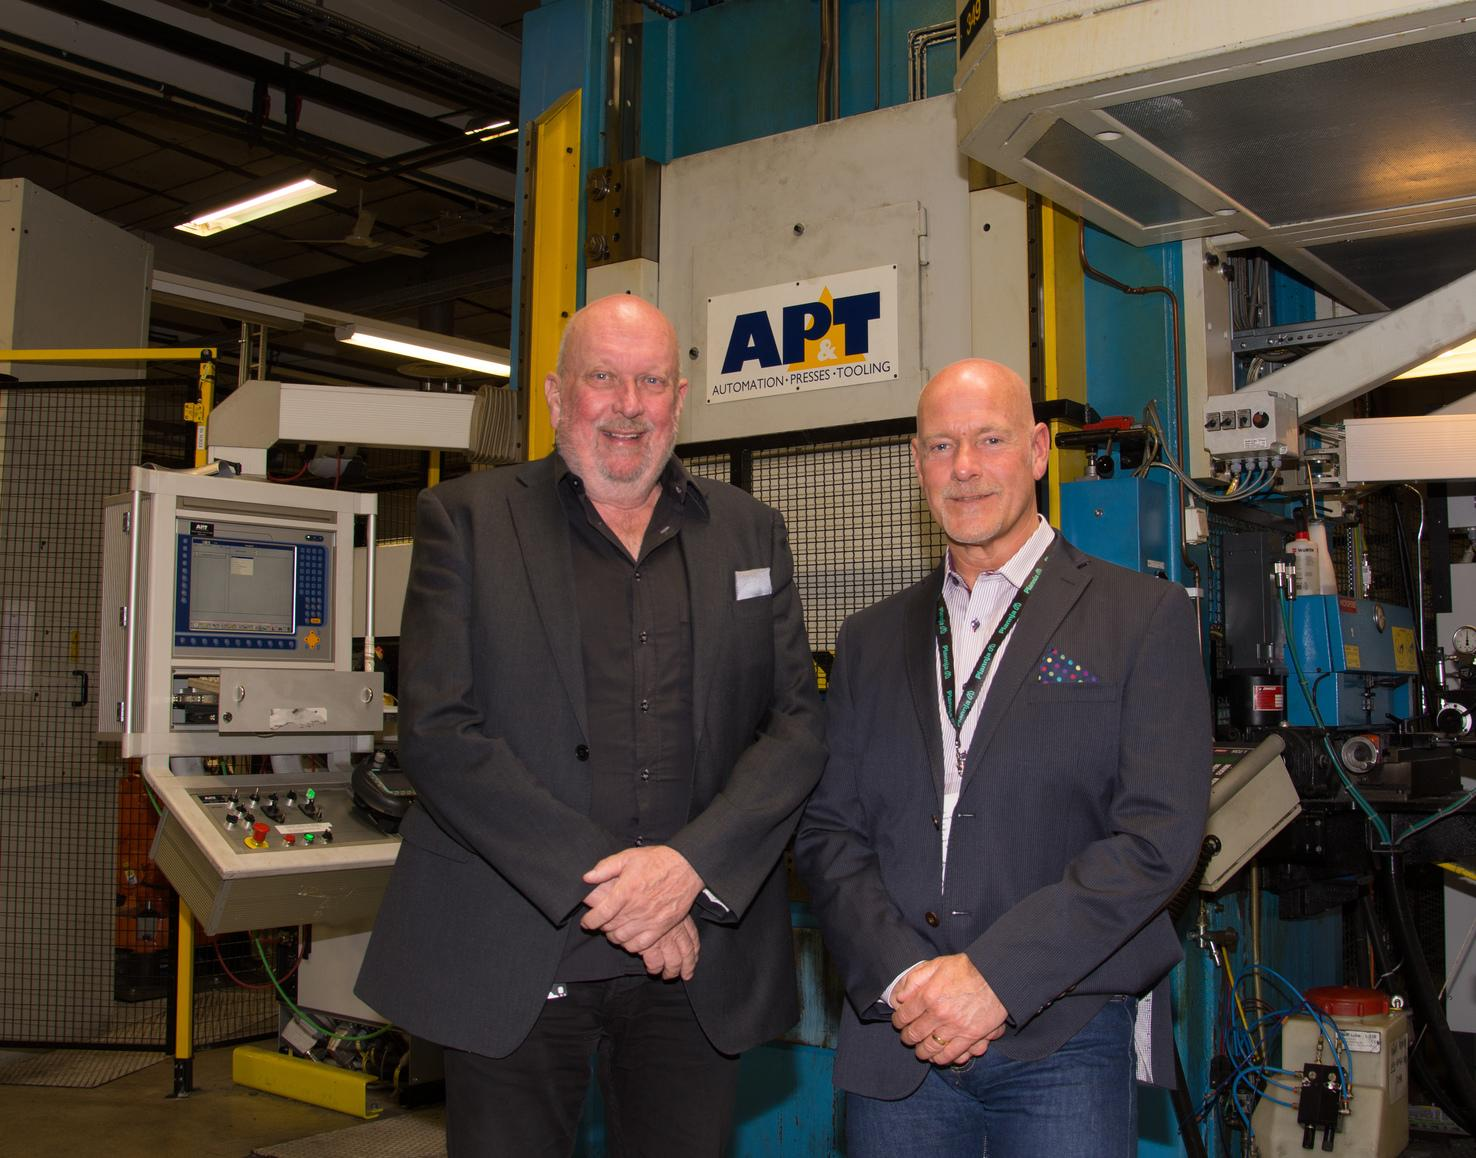 Reliability is everything for Plannja in Järnforsen, Sweden, so the company signed an availability agreement with AP&T. Plannja Site Manager Lars Olofsson (left) together with AP&T Service Coordinator Nordic Tommy Nordlund, Contract Sales.